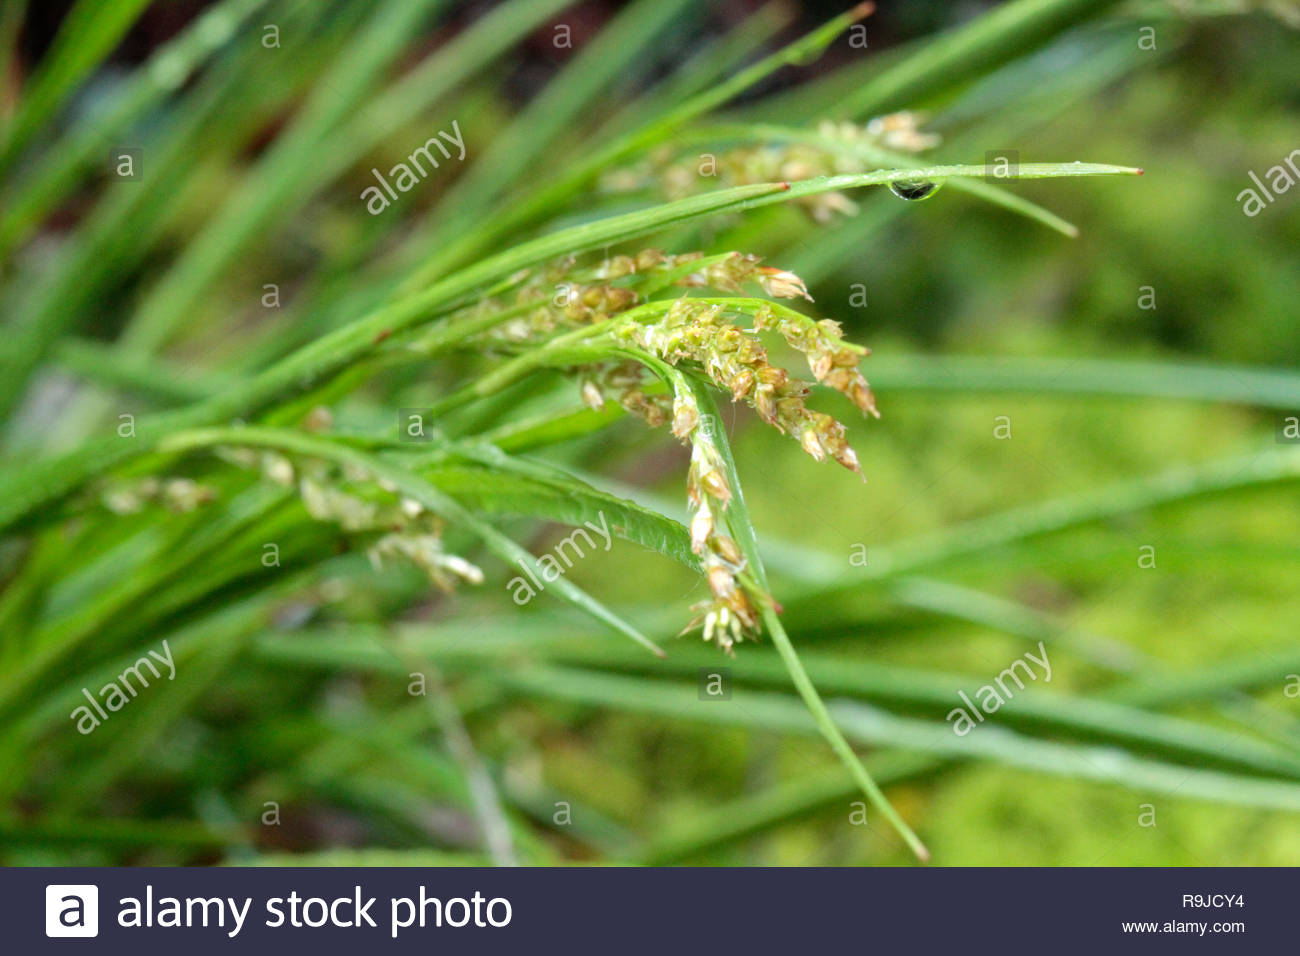 Sedge closeup, Limpy Rock National Research Area, Umpqua National Park, Oregon, USA - Stock Image